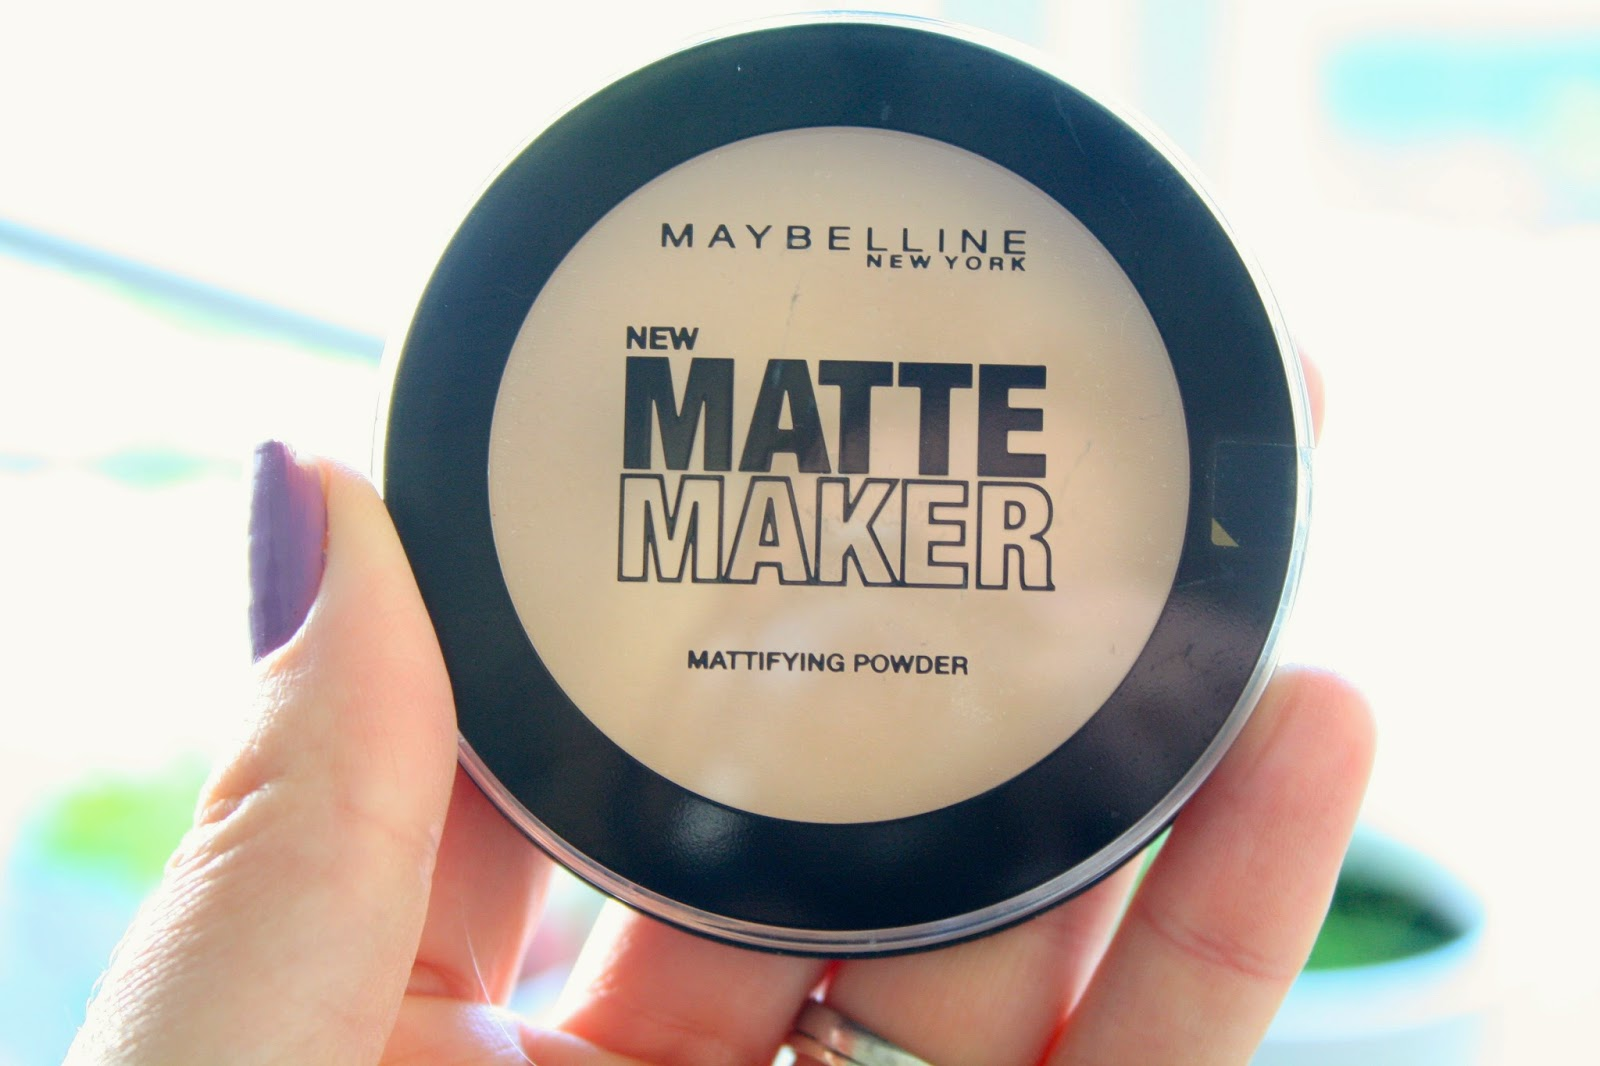 Maybelline-Matte-Maker-Powder-Review